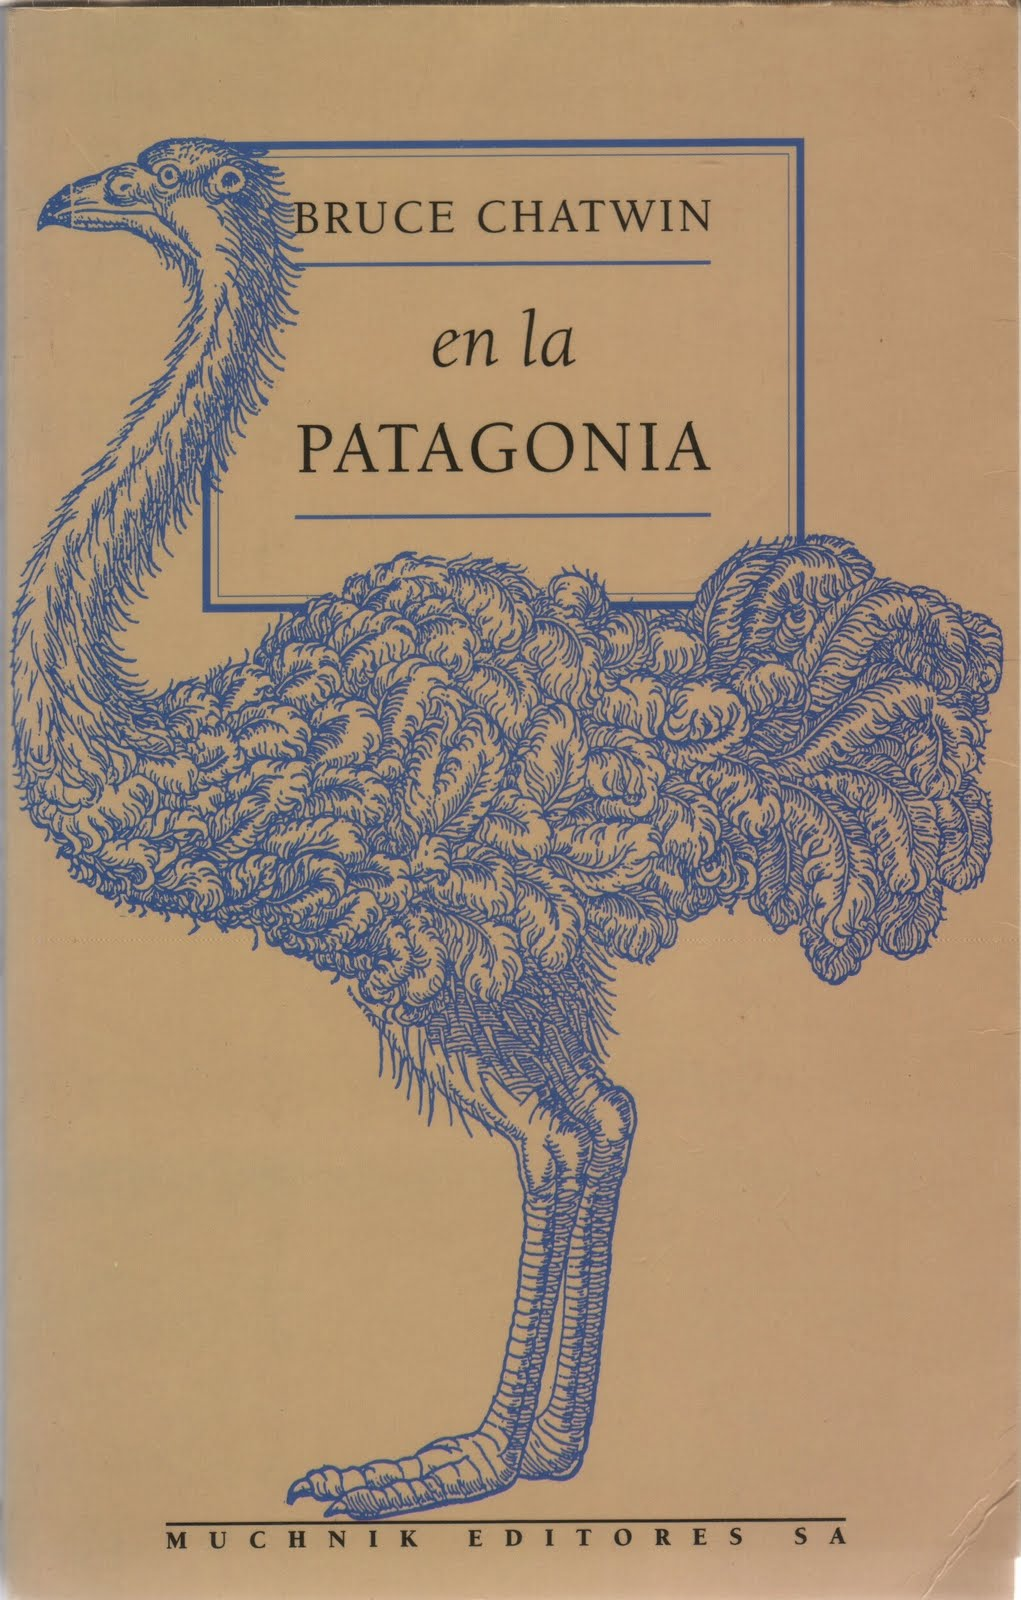 En la Patagonia - Bruce Chatwin ChatwinEnlapPatagonia